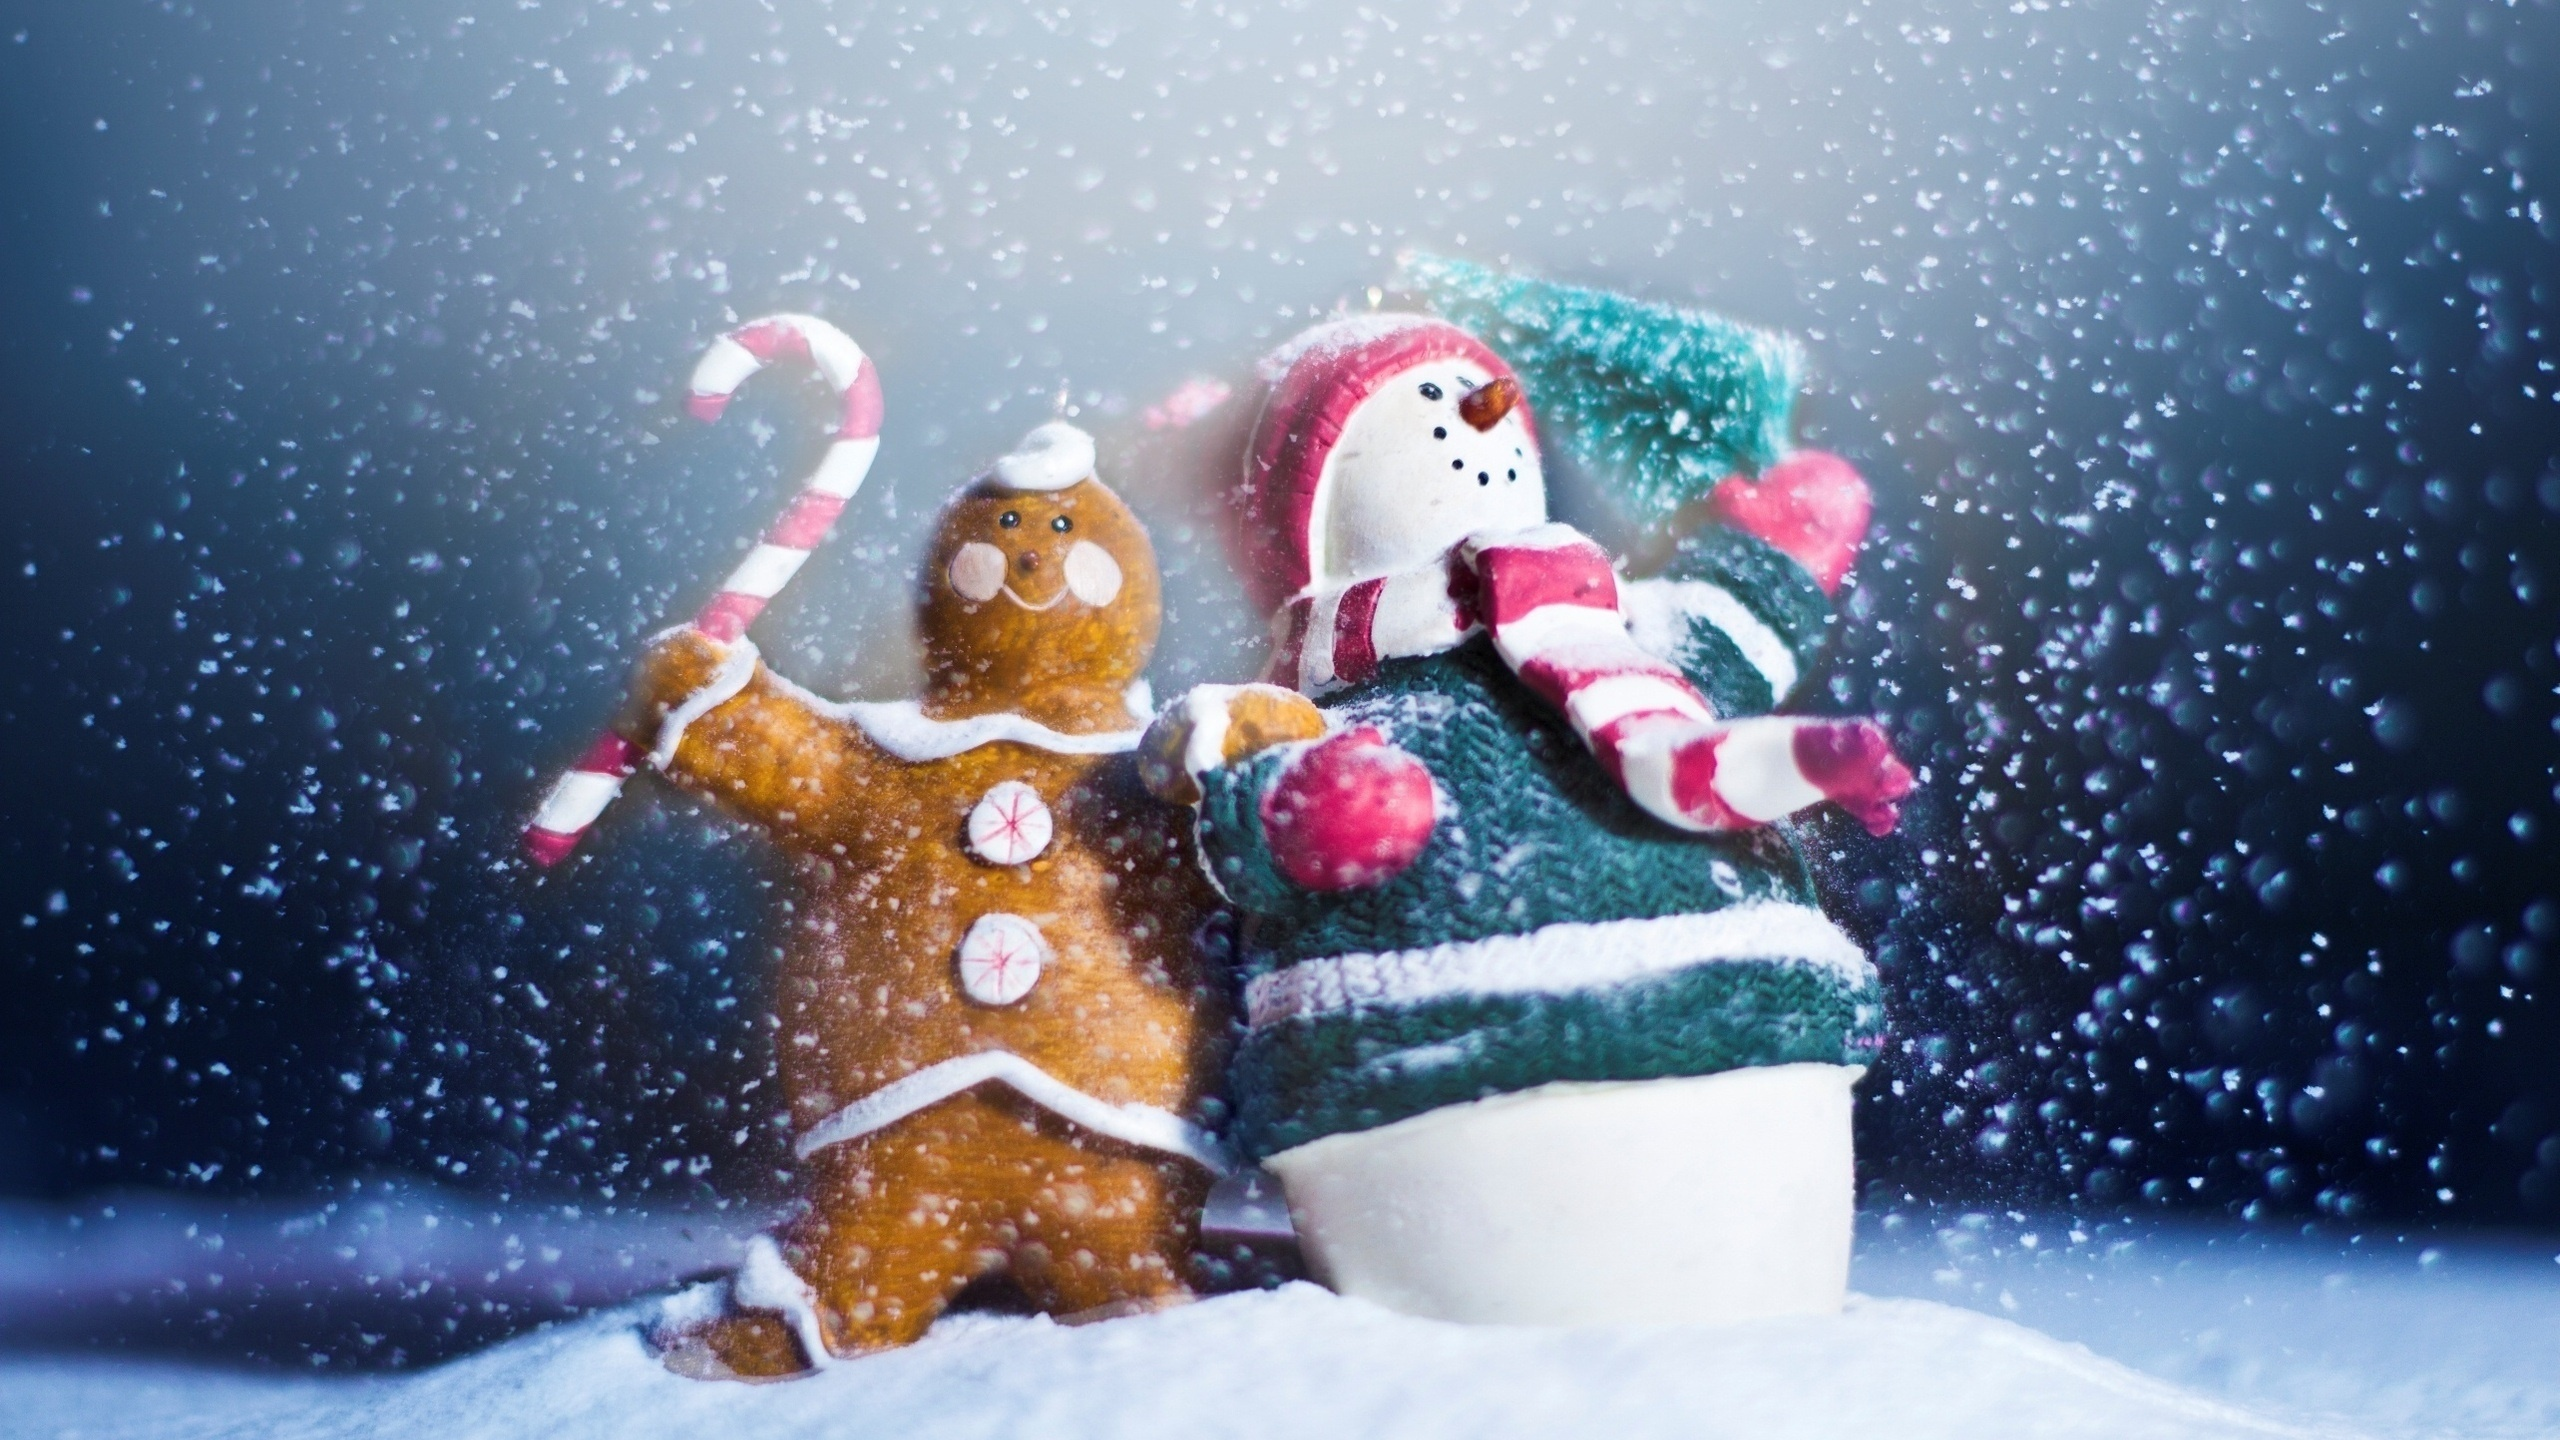 2560x1440 Merry Christmas and a Happy New Year desktop PC and Mac ...